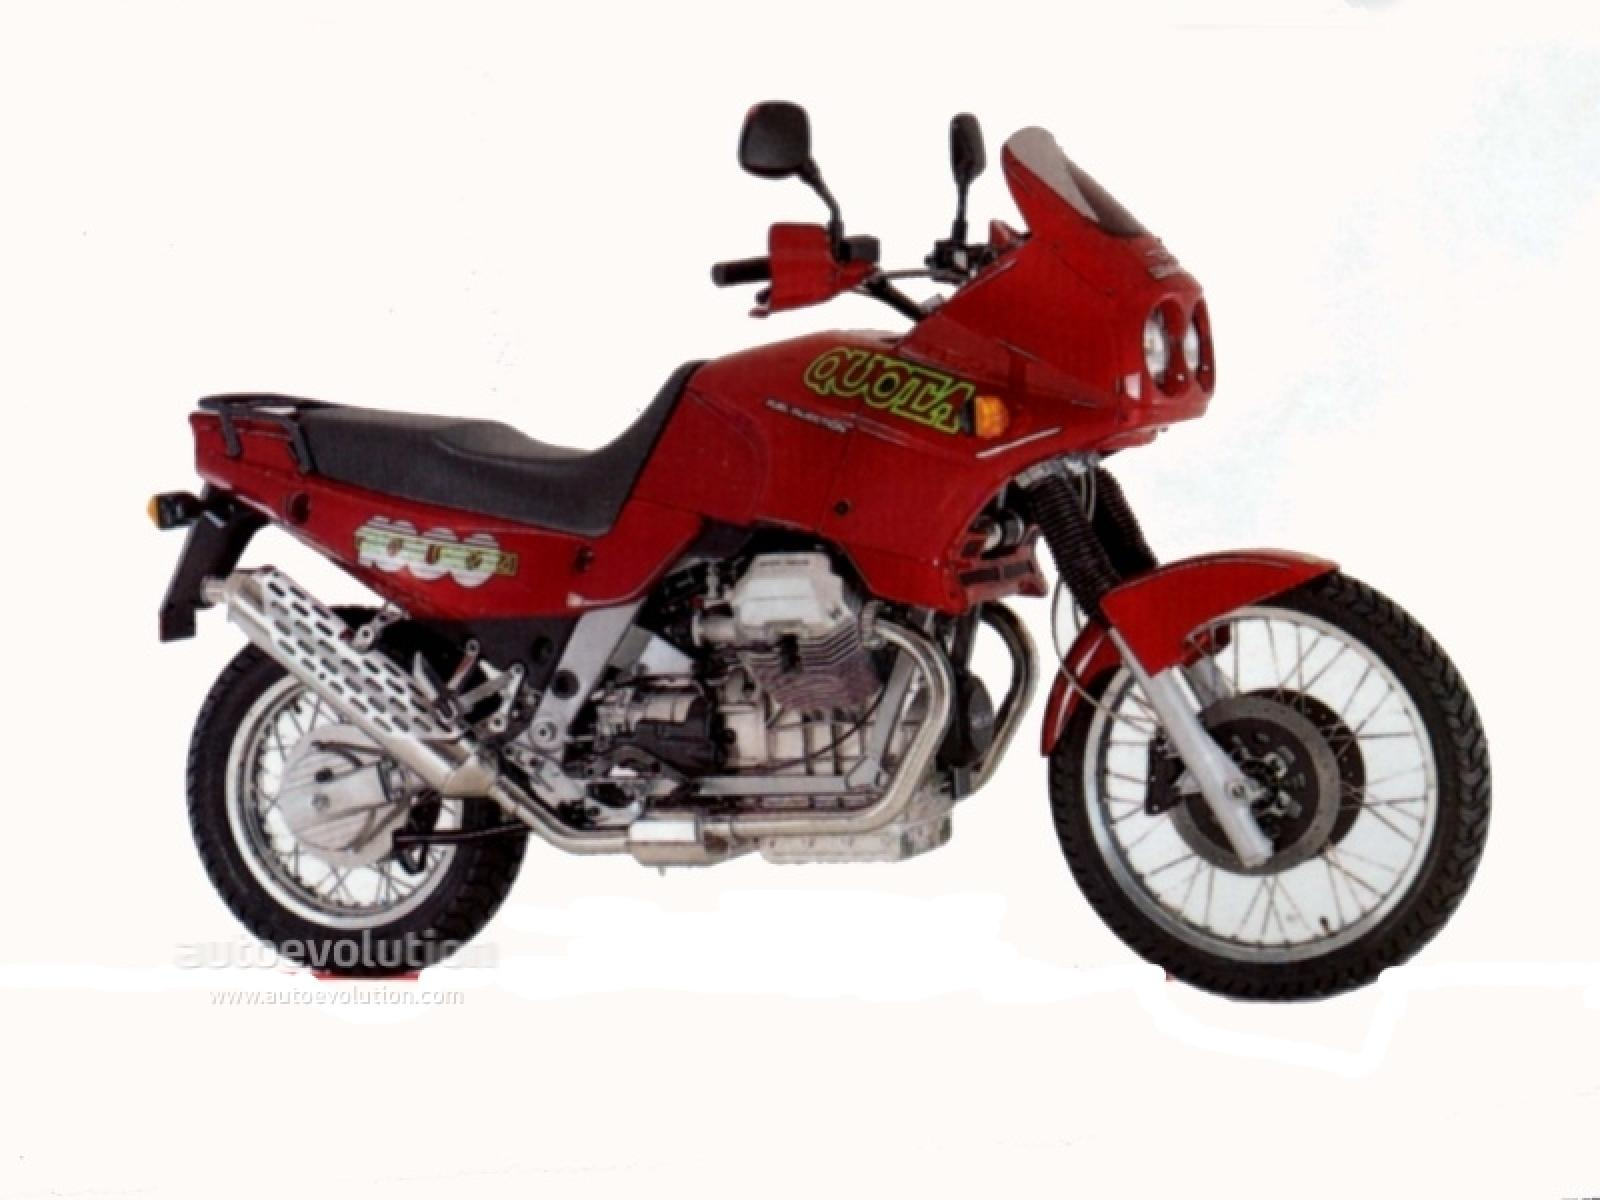 Moto Guzzi Quota 1000 images #109278